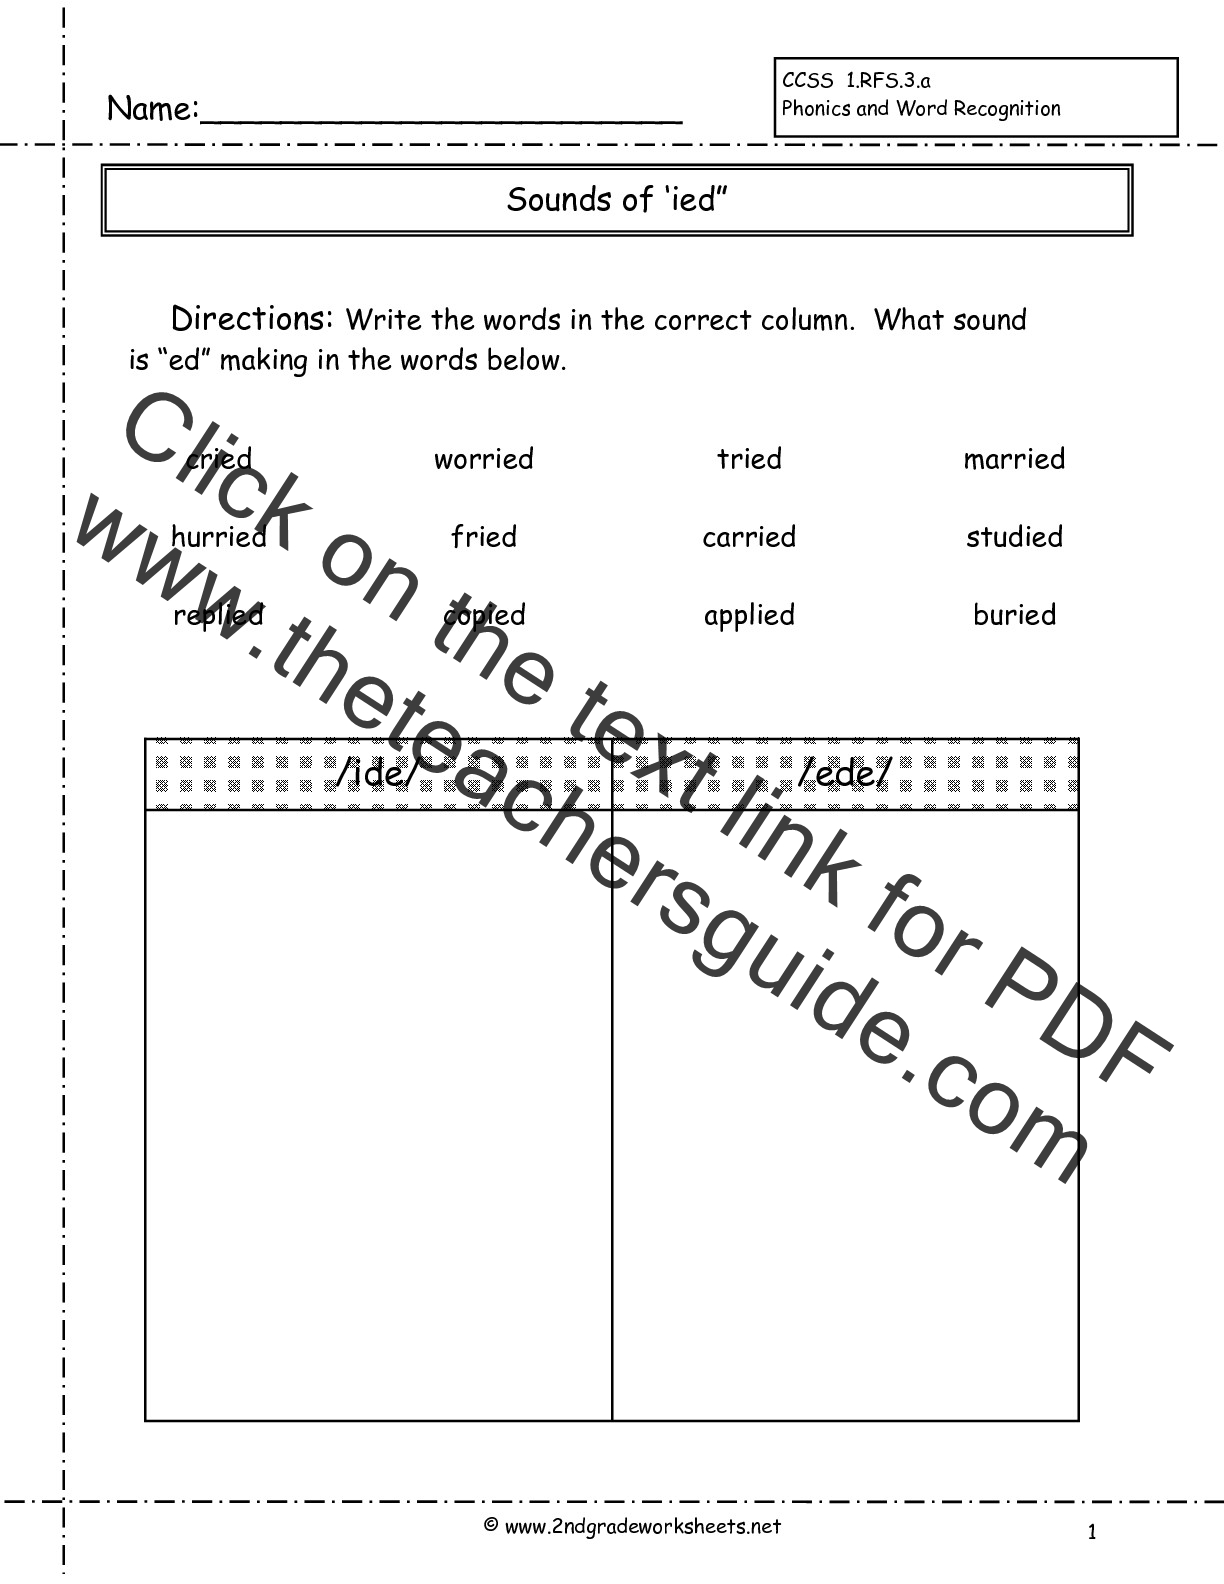 Worksheet Kindergarten Beginning Sounds beginning sounds for kindergarten images guru printable phonics worksheets chart kindergarten